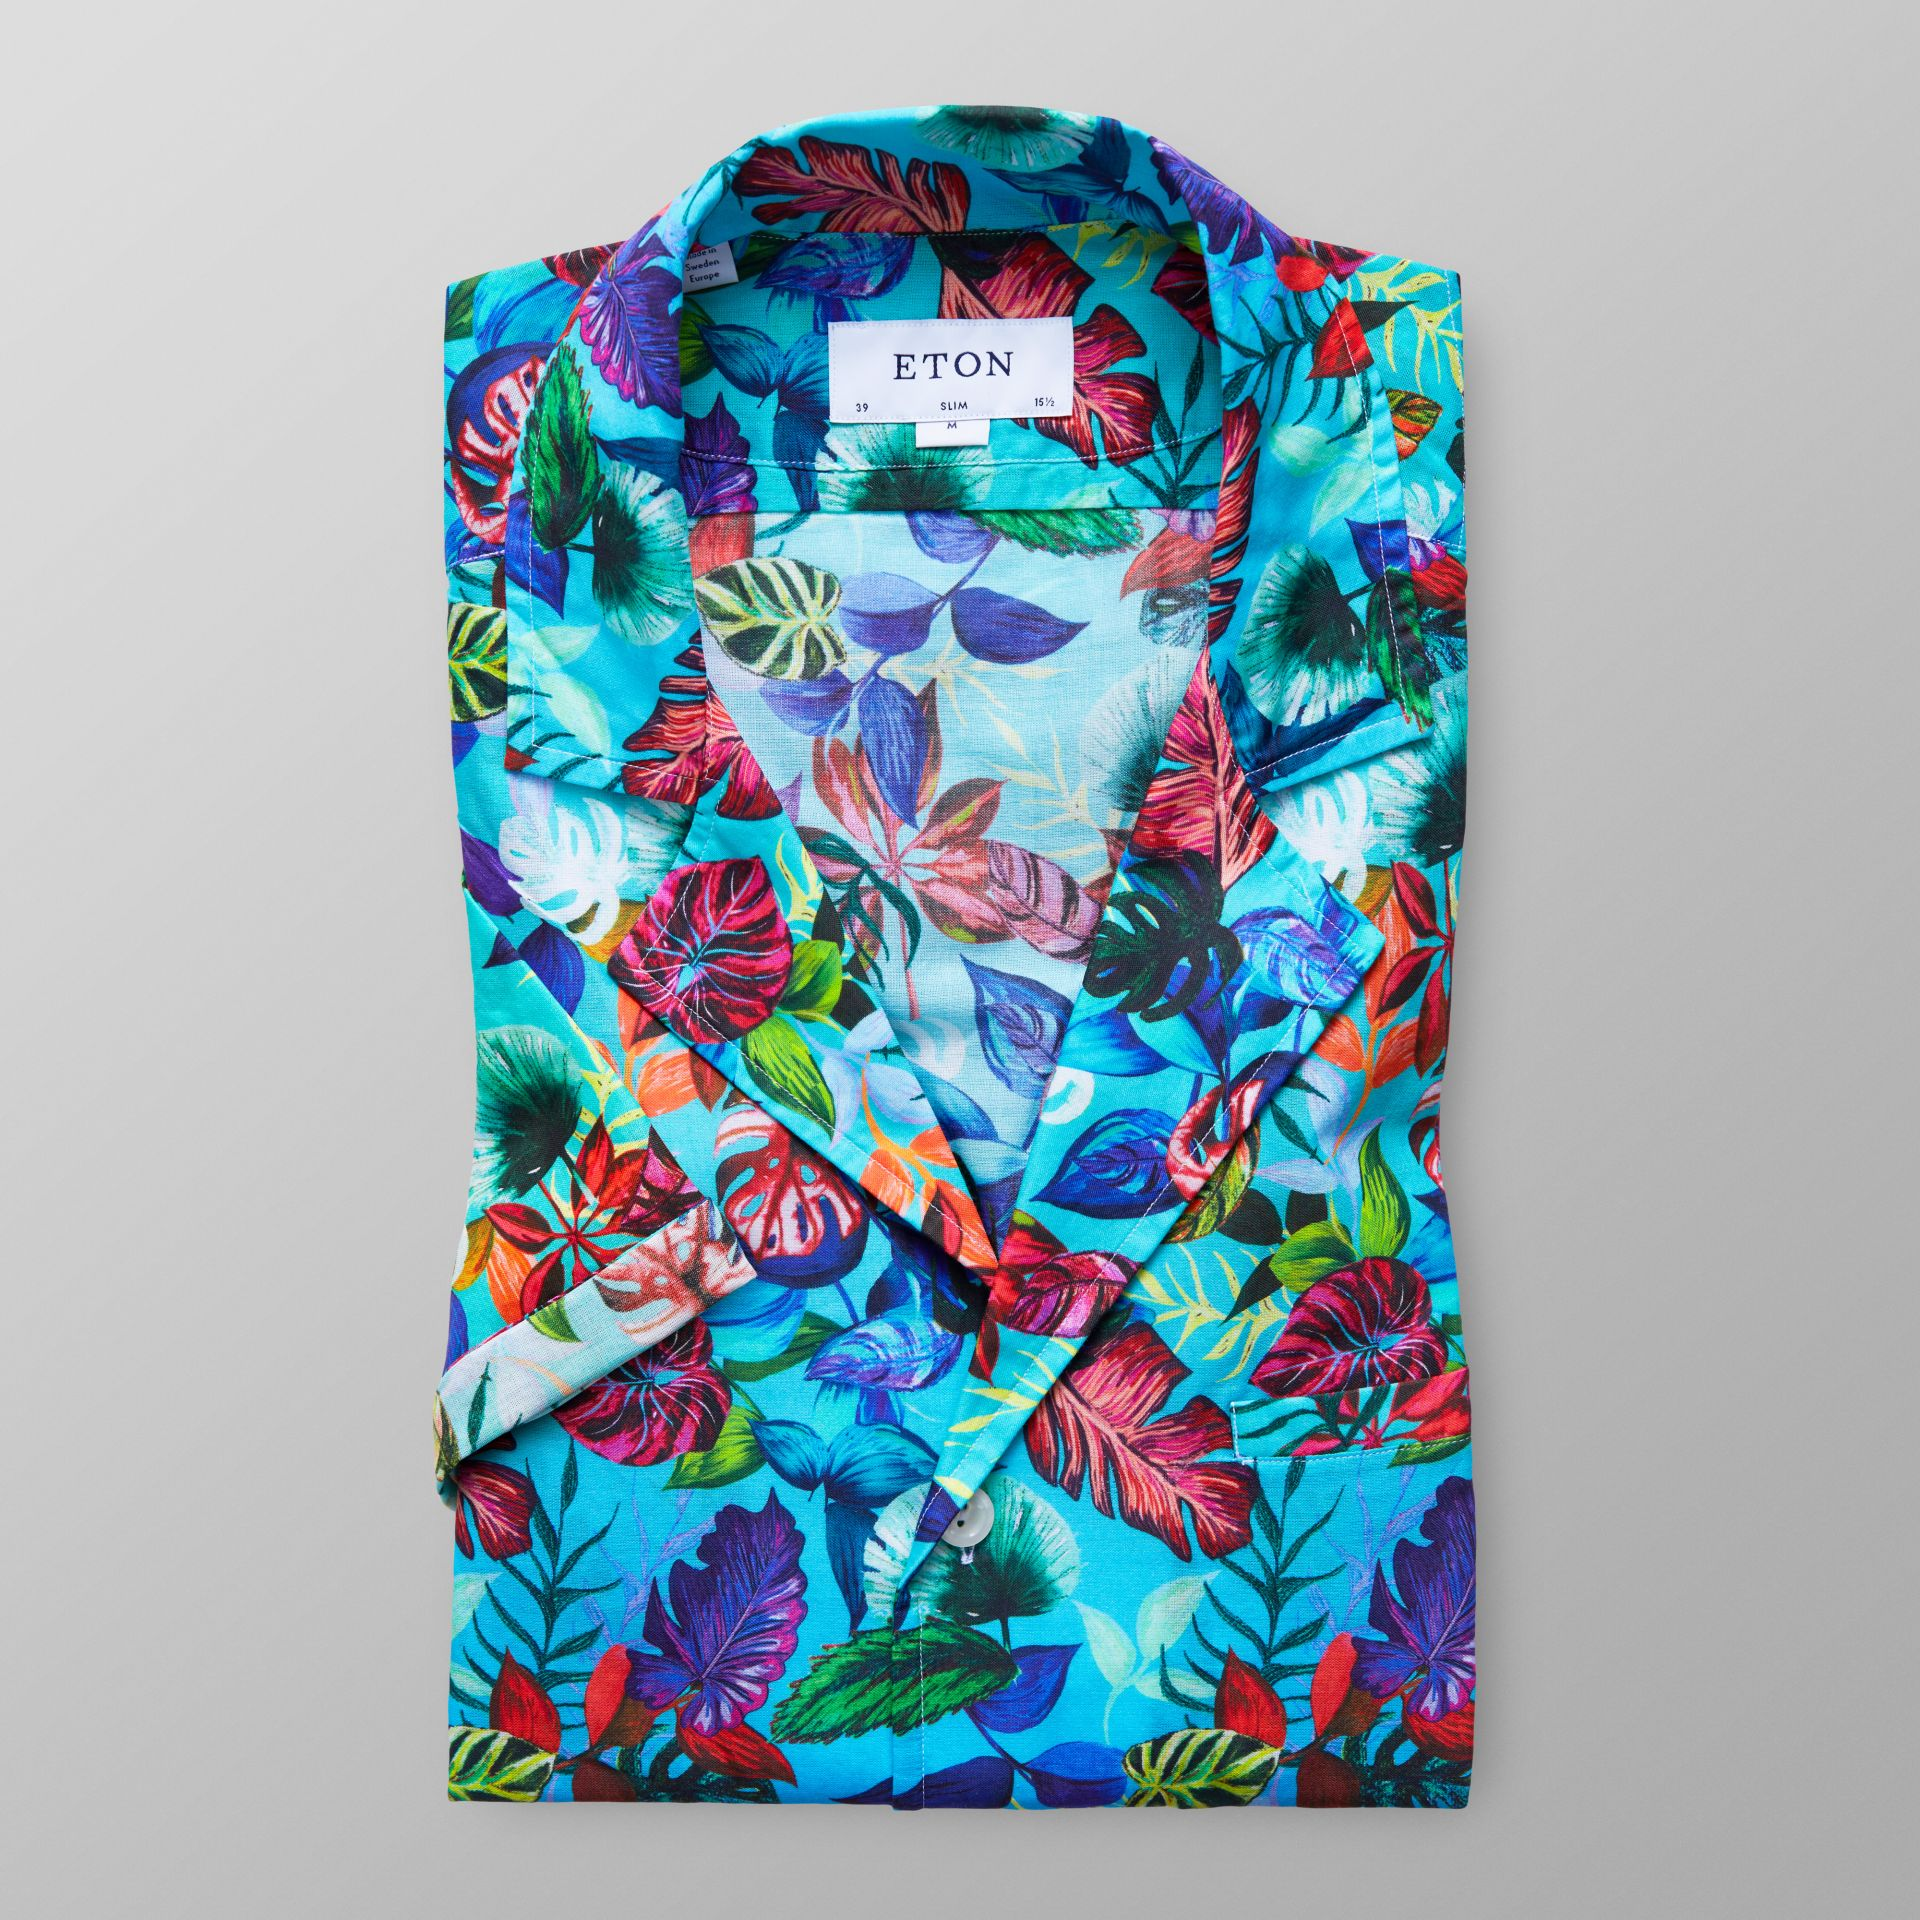 Slim fit Red Palm Print Resort Shirt Eton Buy Cheap Shop Offer Buy Cheap Geniue Stockist Clearance Discount Countdown Package N0V9dMM